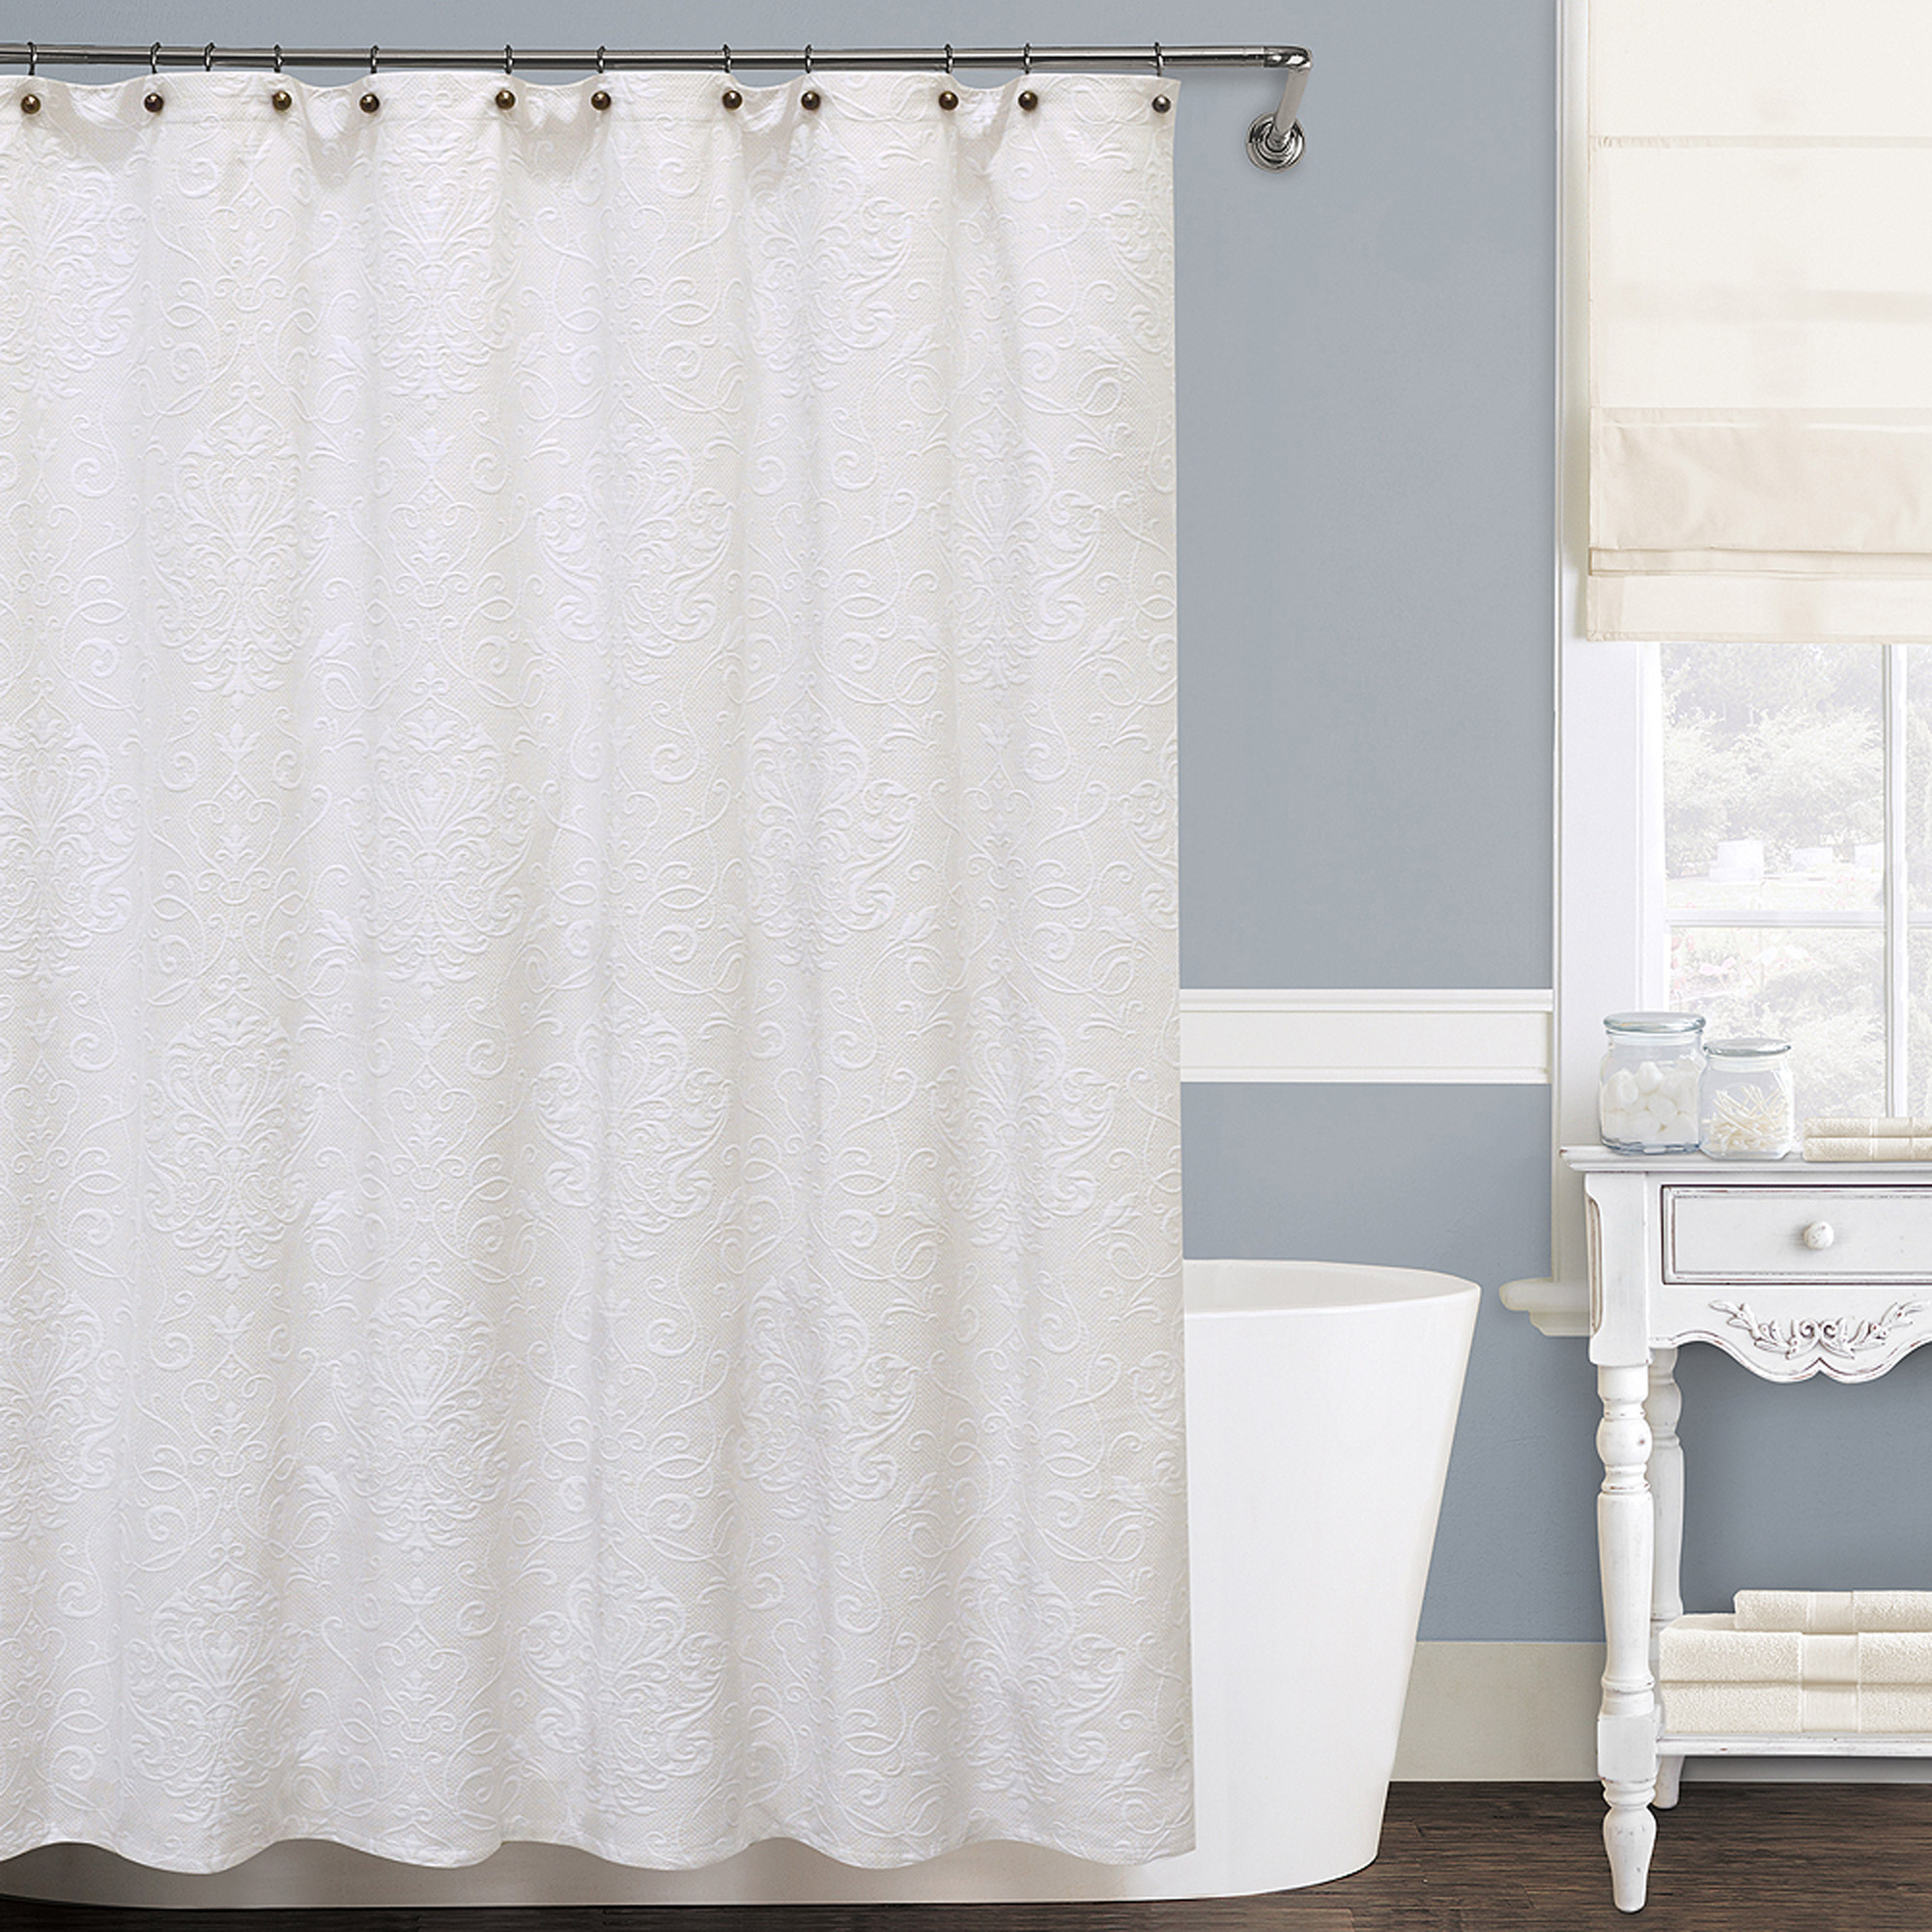 Shower Curtain Size For Curved Rod • Shower Curtains Ideas